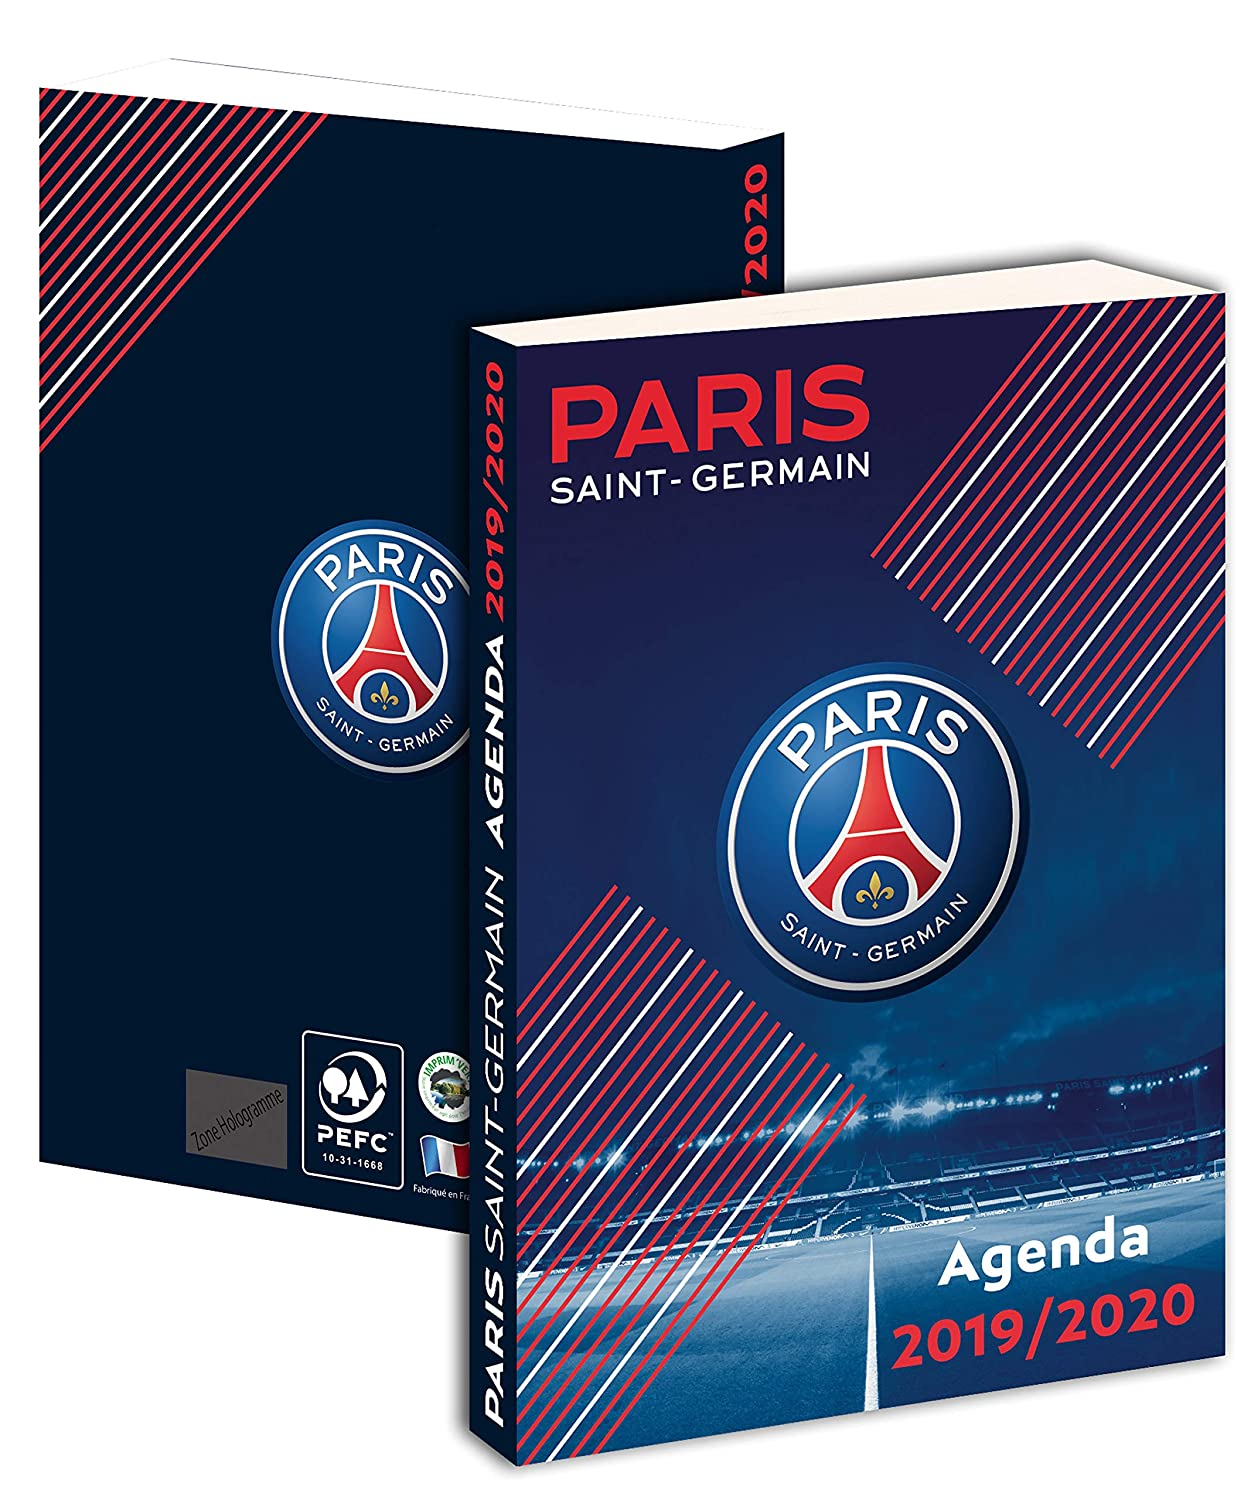 Agenda scolaire PSG 2018 / 2019 - Collection officielle PARIS Saint GERMAIN - Rentrée scolaire